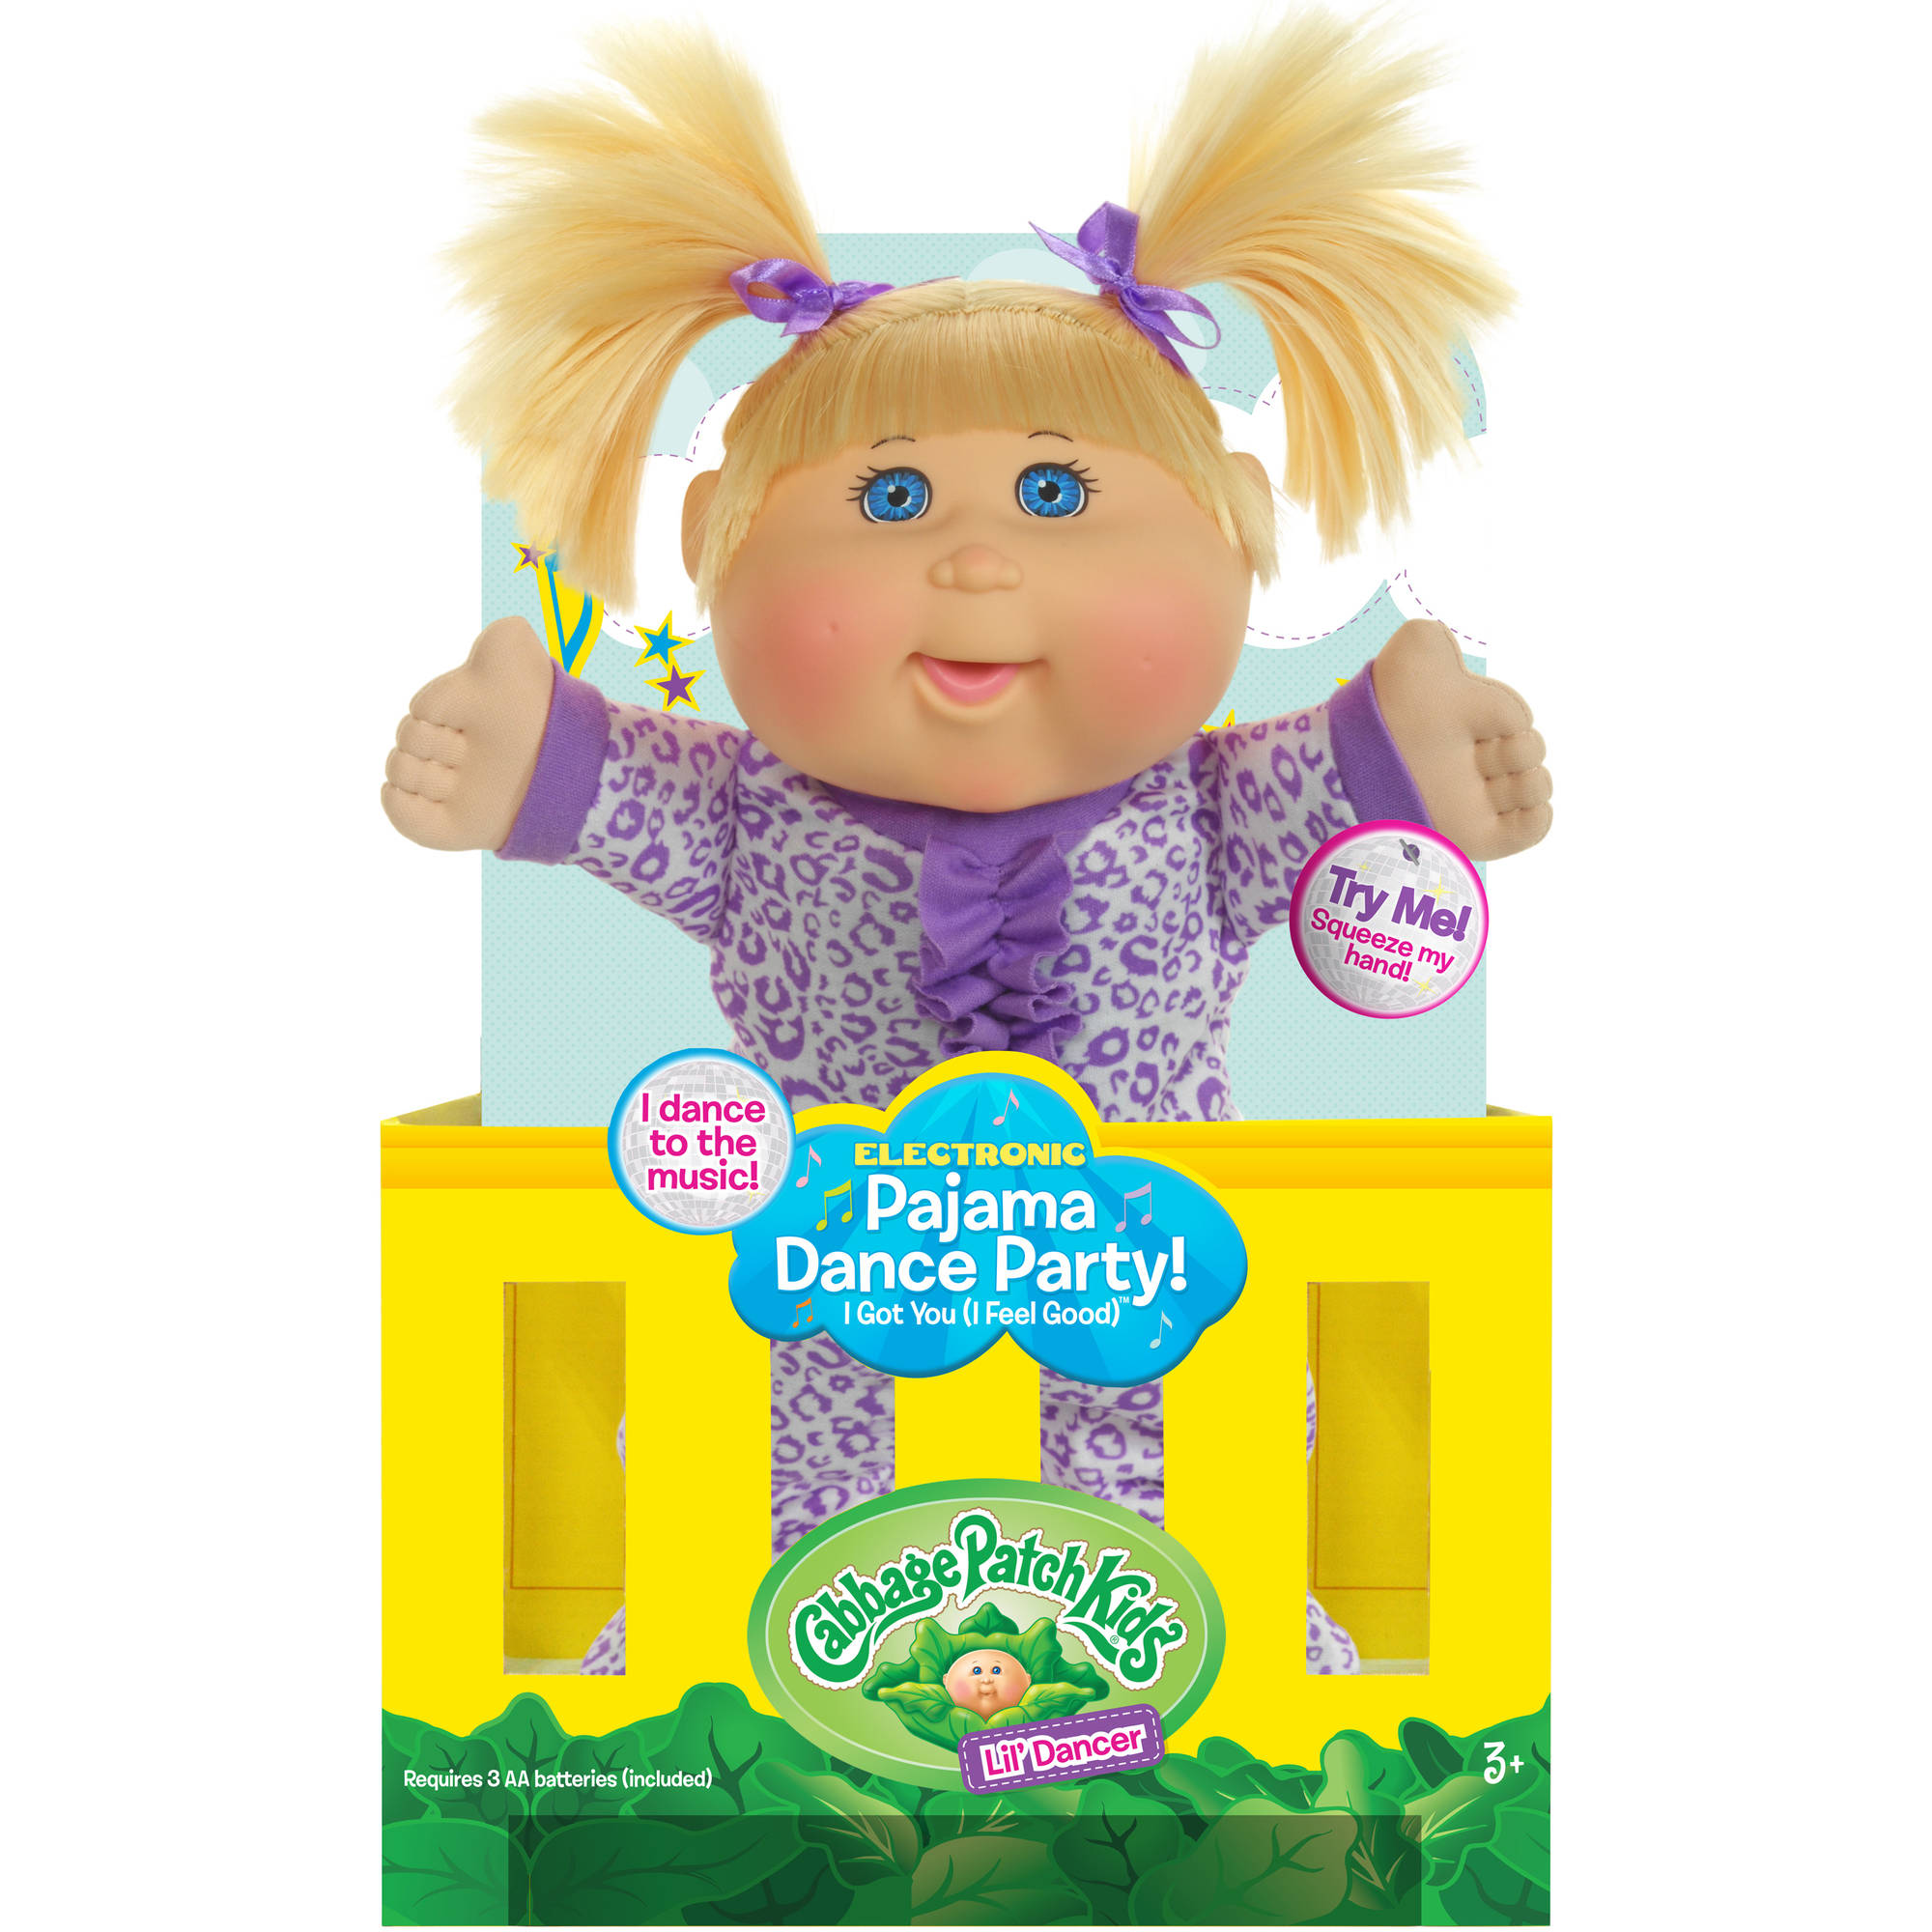 Cabbage Patch Kids Pajama Dance Party Doll Blonde Hair Blue Eye